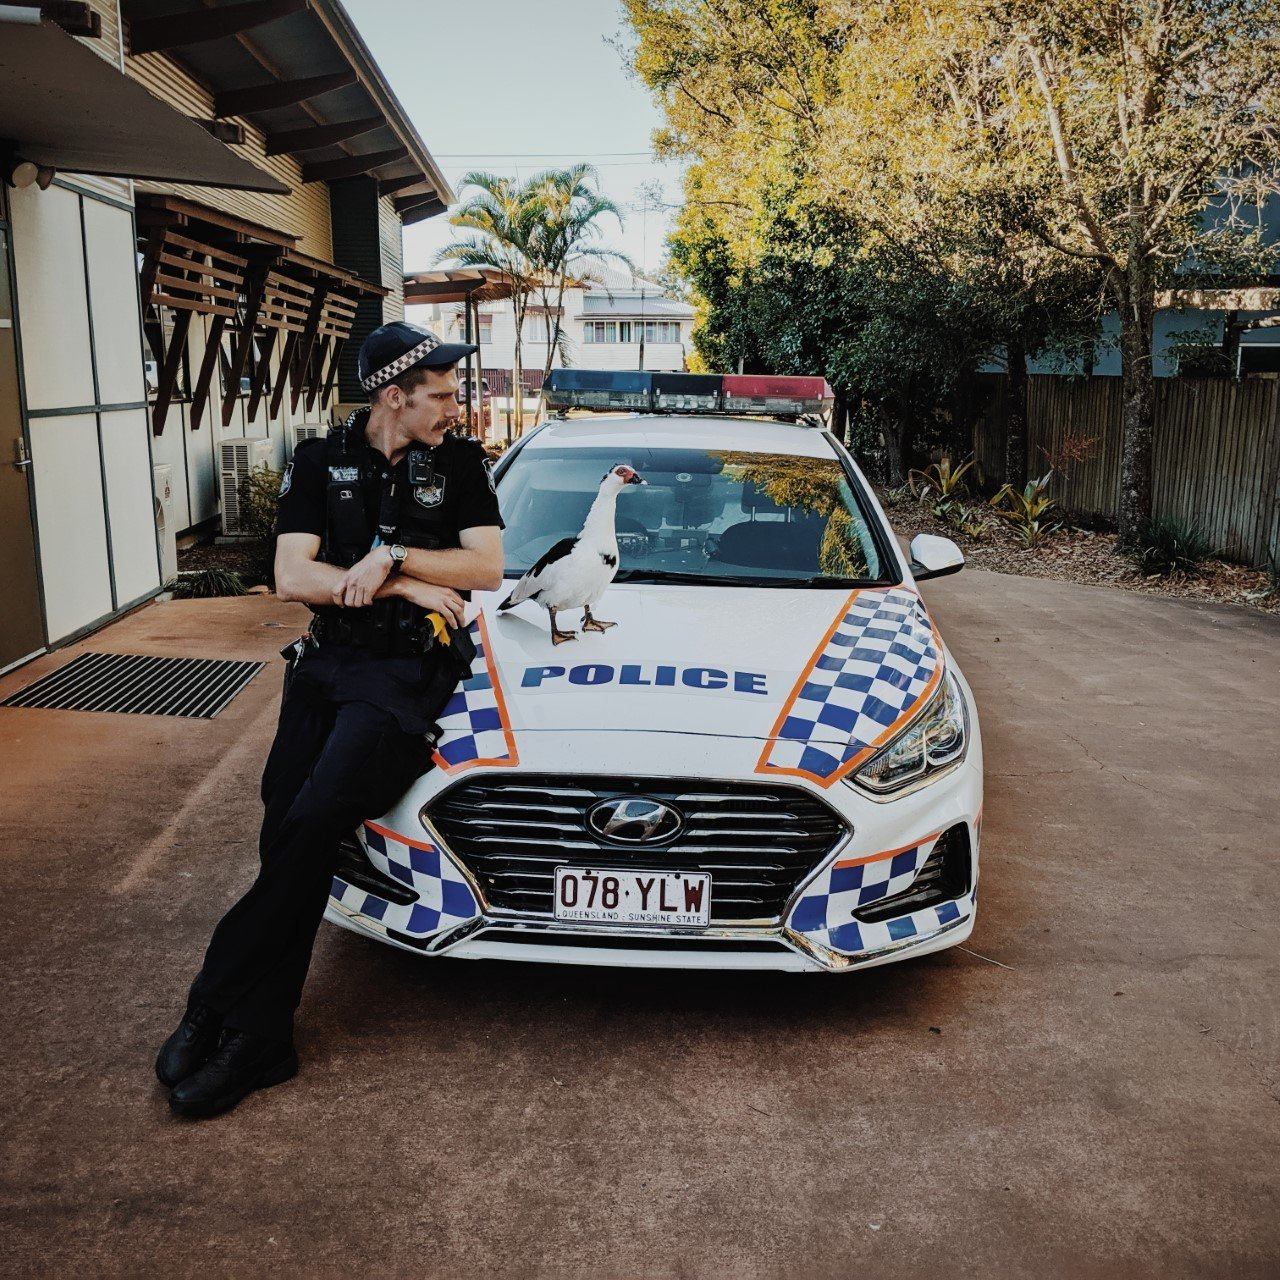 Constable Rohin Power with Bella the Childers Police Station Duck who has been taken under the wing of officers since she began living at the station in 2013.